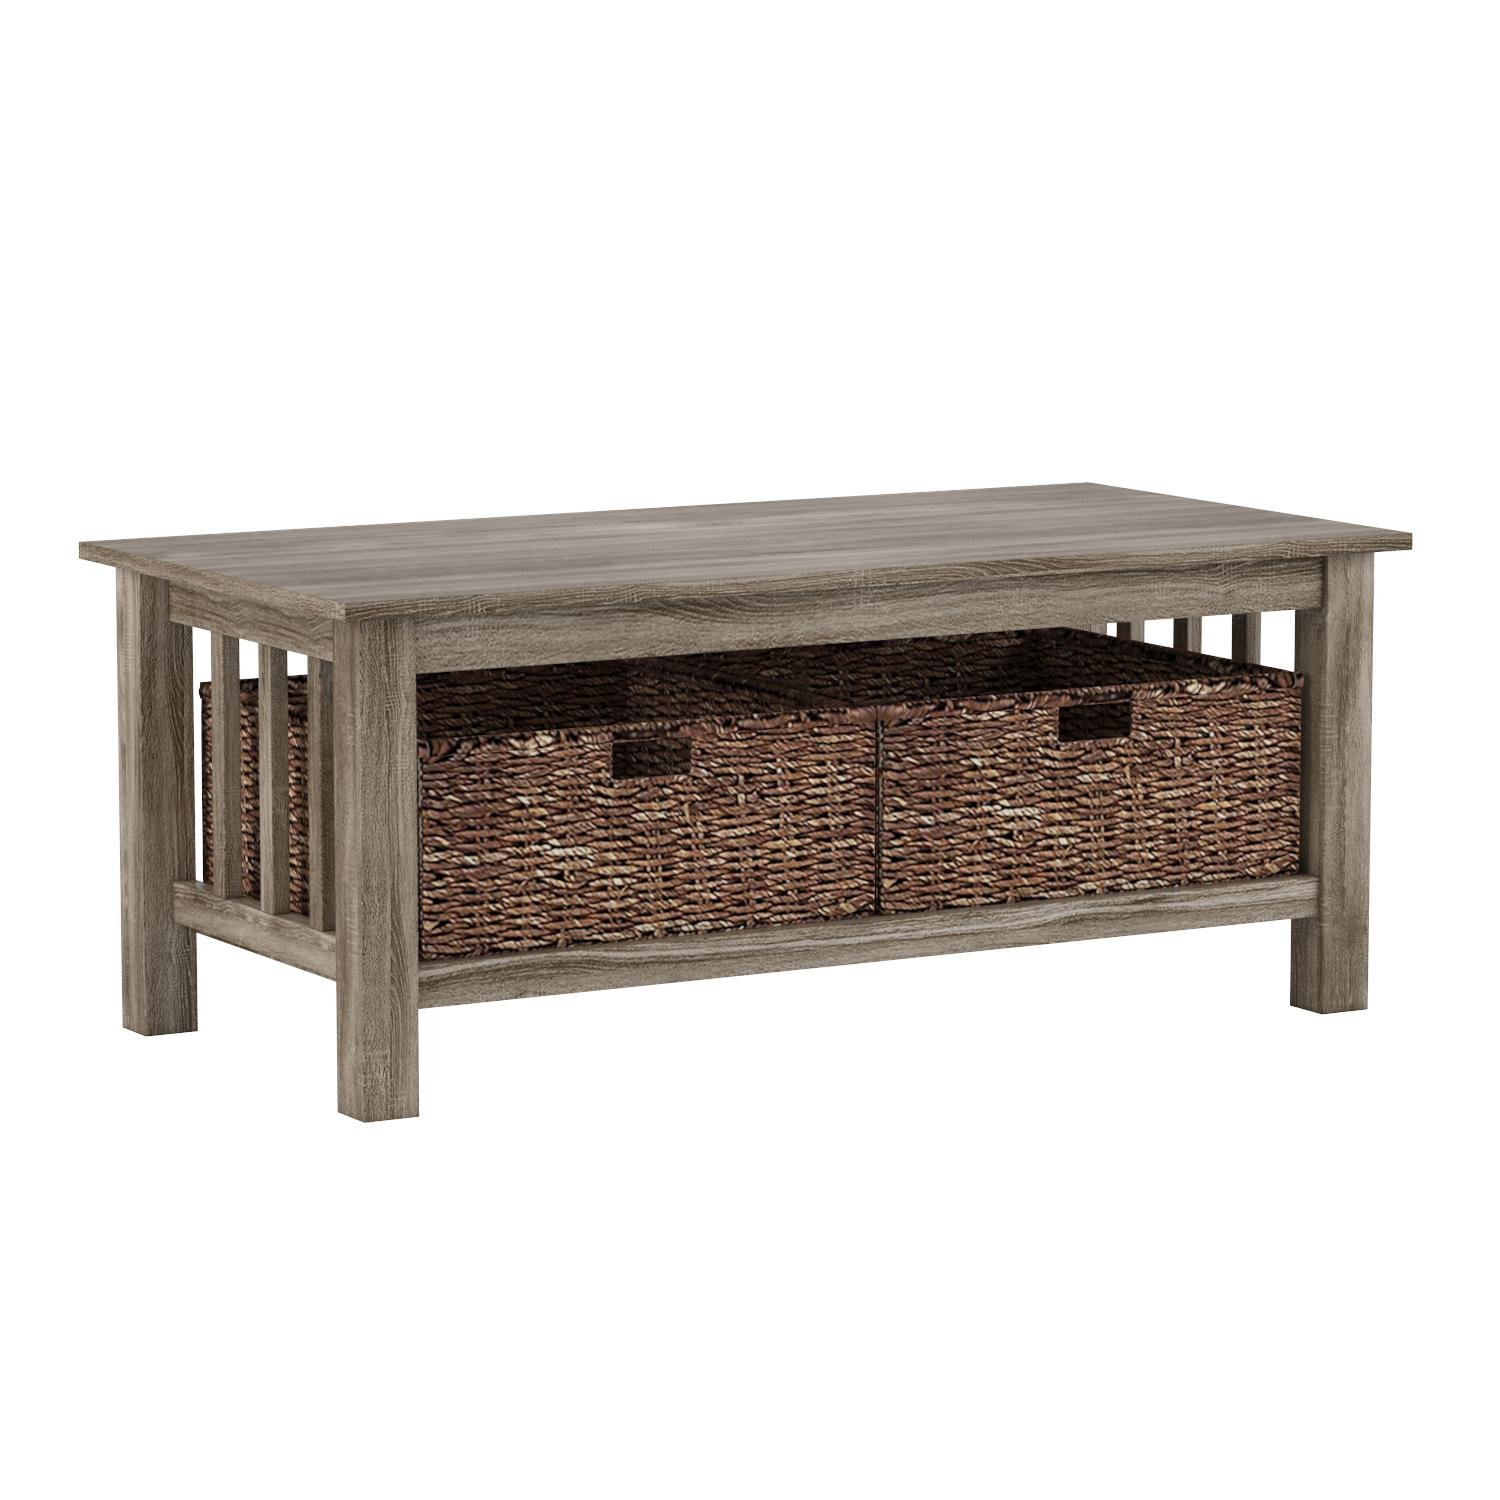 WE Furniture 40'' Driftwood Storage Short Rectangular Coffee Table For Living Room with Totes by WE Furniture